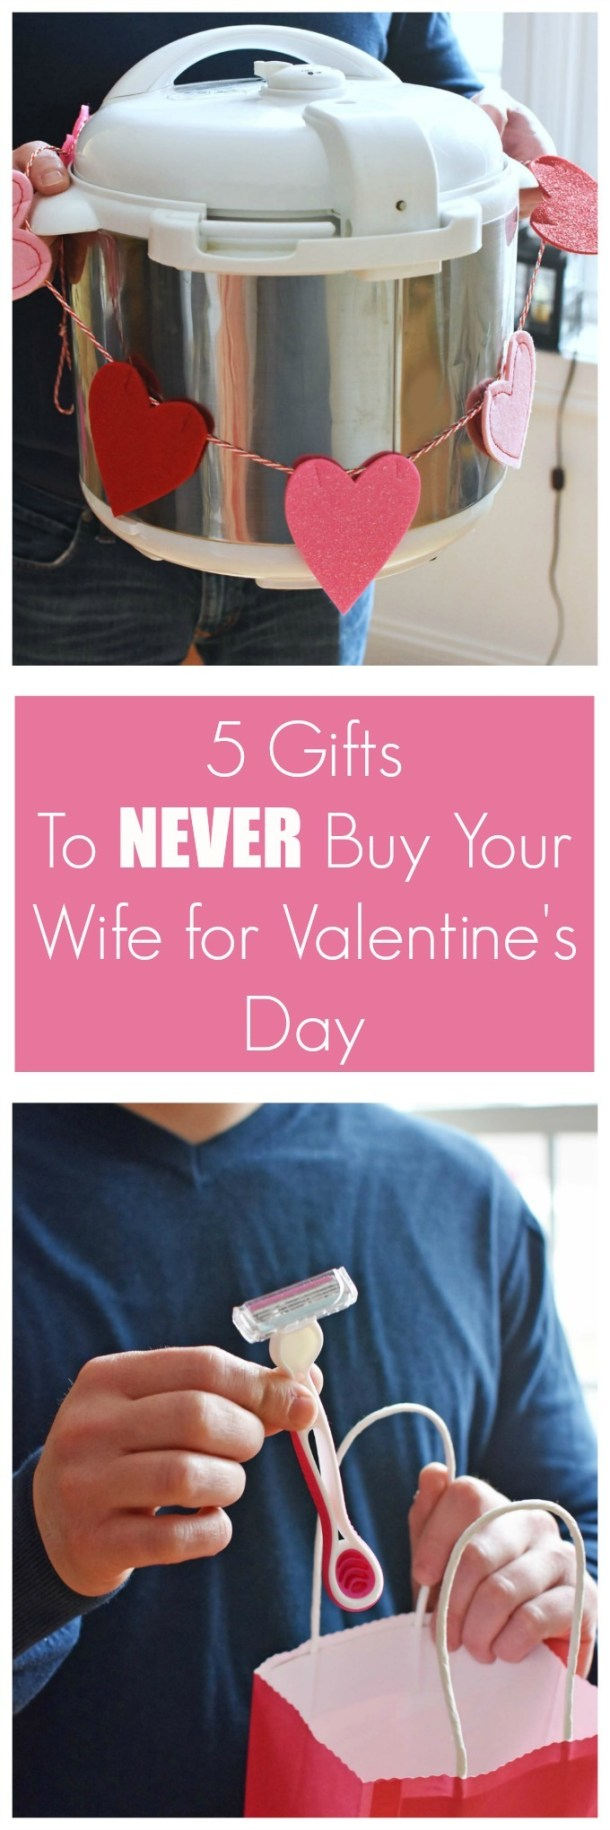 5 Gifts to Never Buy Your Wife for Valentines Day